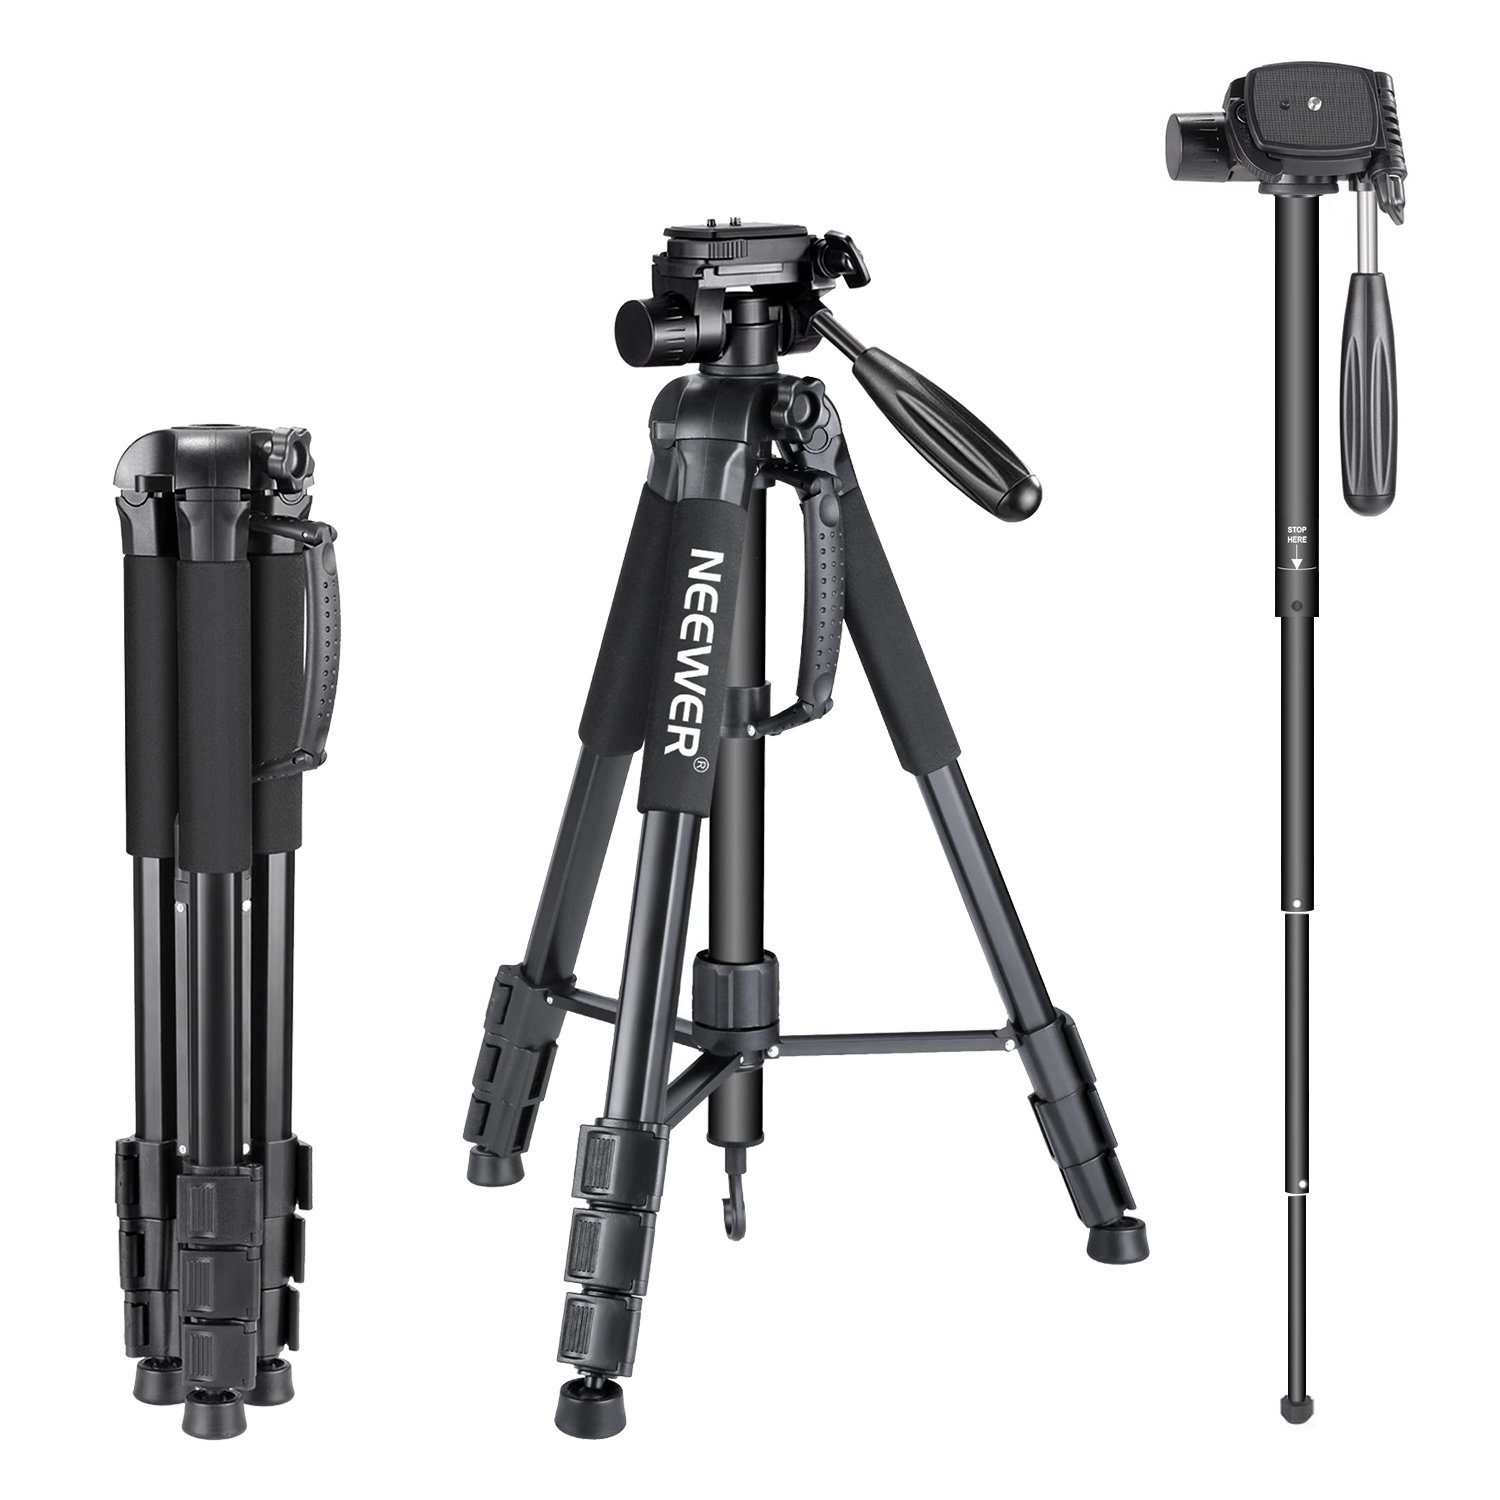 Finetoknow Camera Monopod Kit Telescopic Video Monopods Aluminum Alloy Stand for DSLR Video Cameras Camcorders